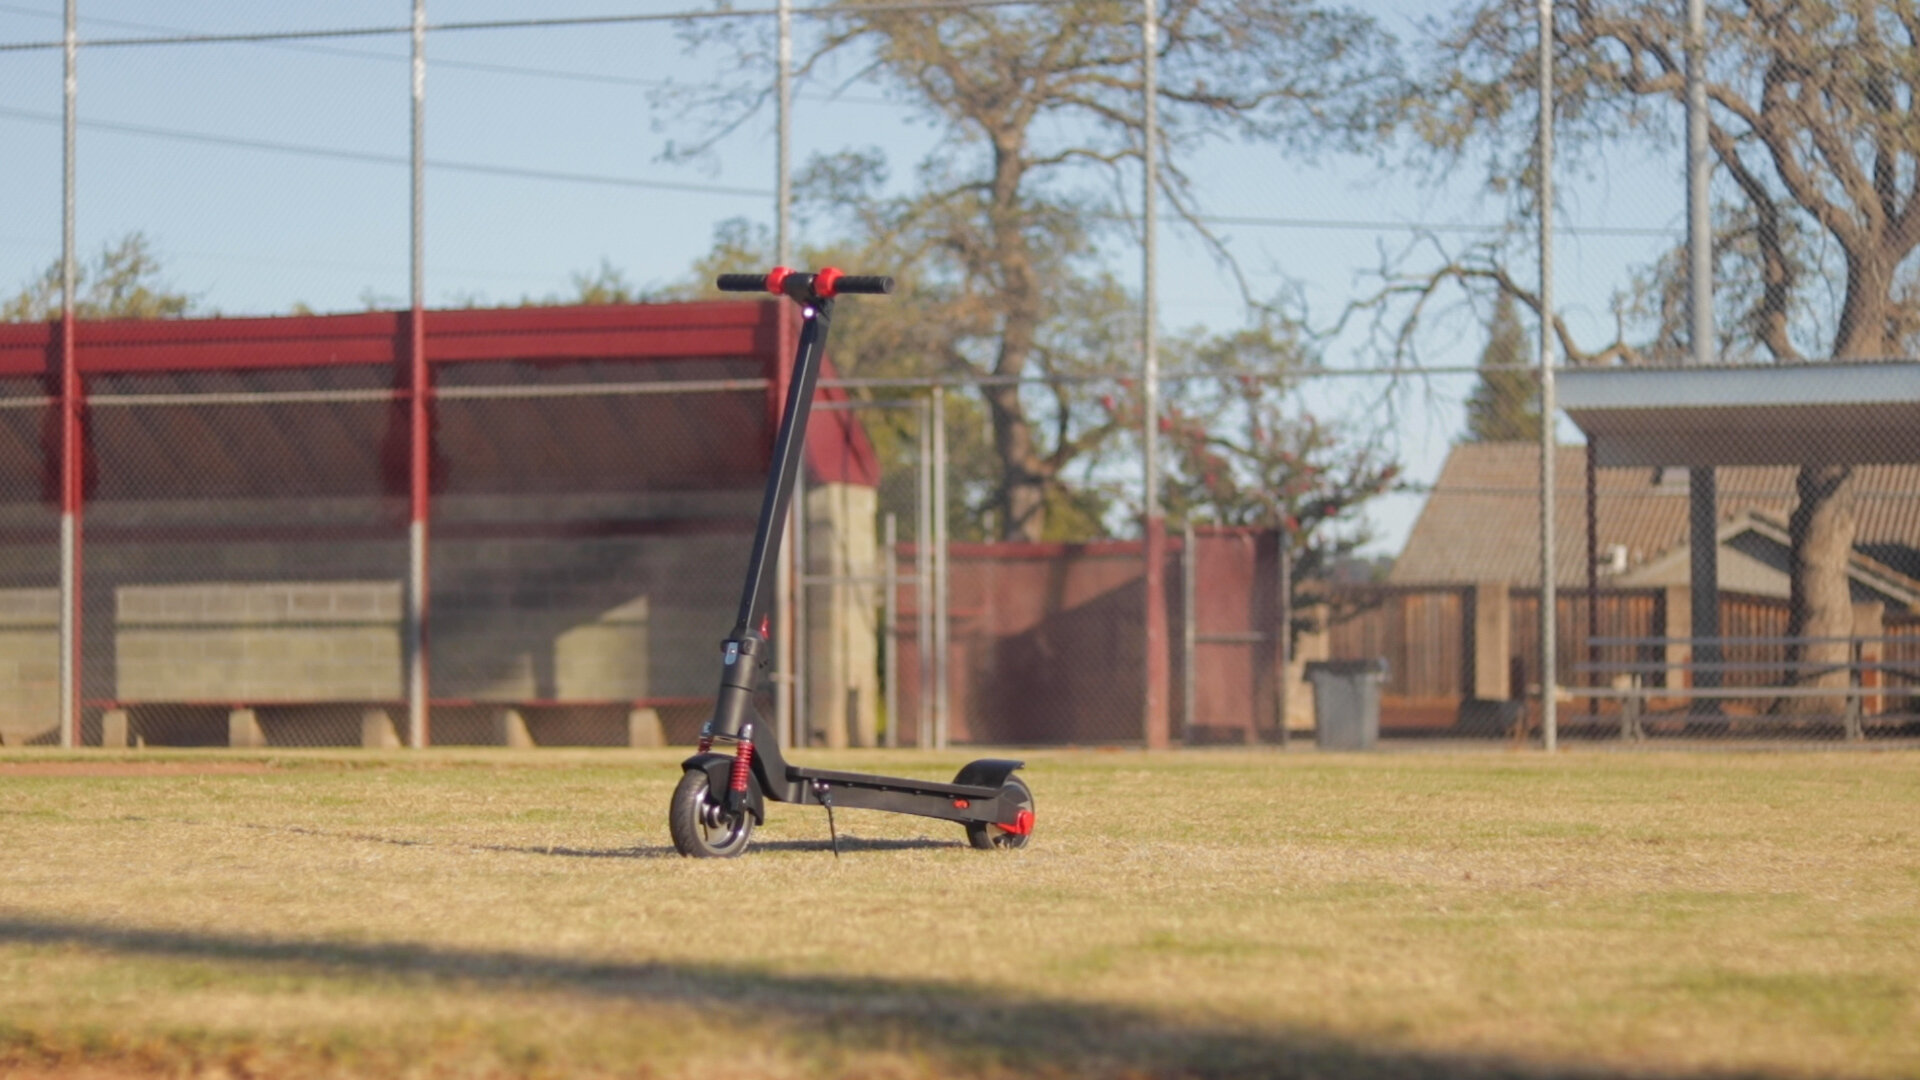 tianrun-r3s-electric-scooter-review-2019-profile-3.jpg